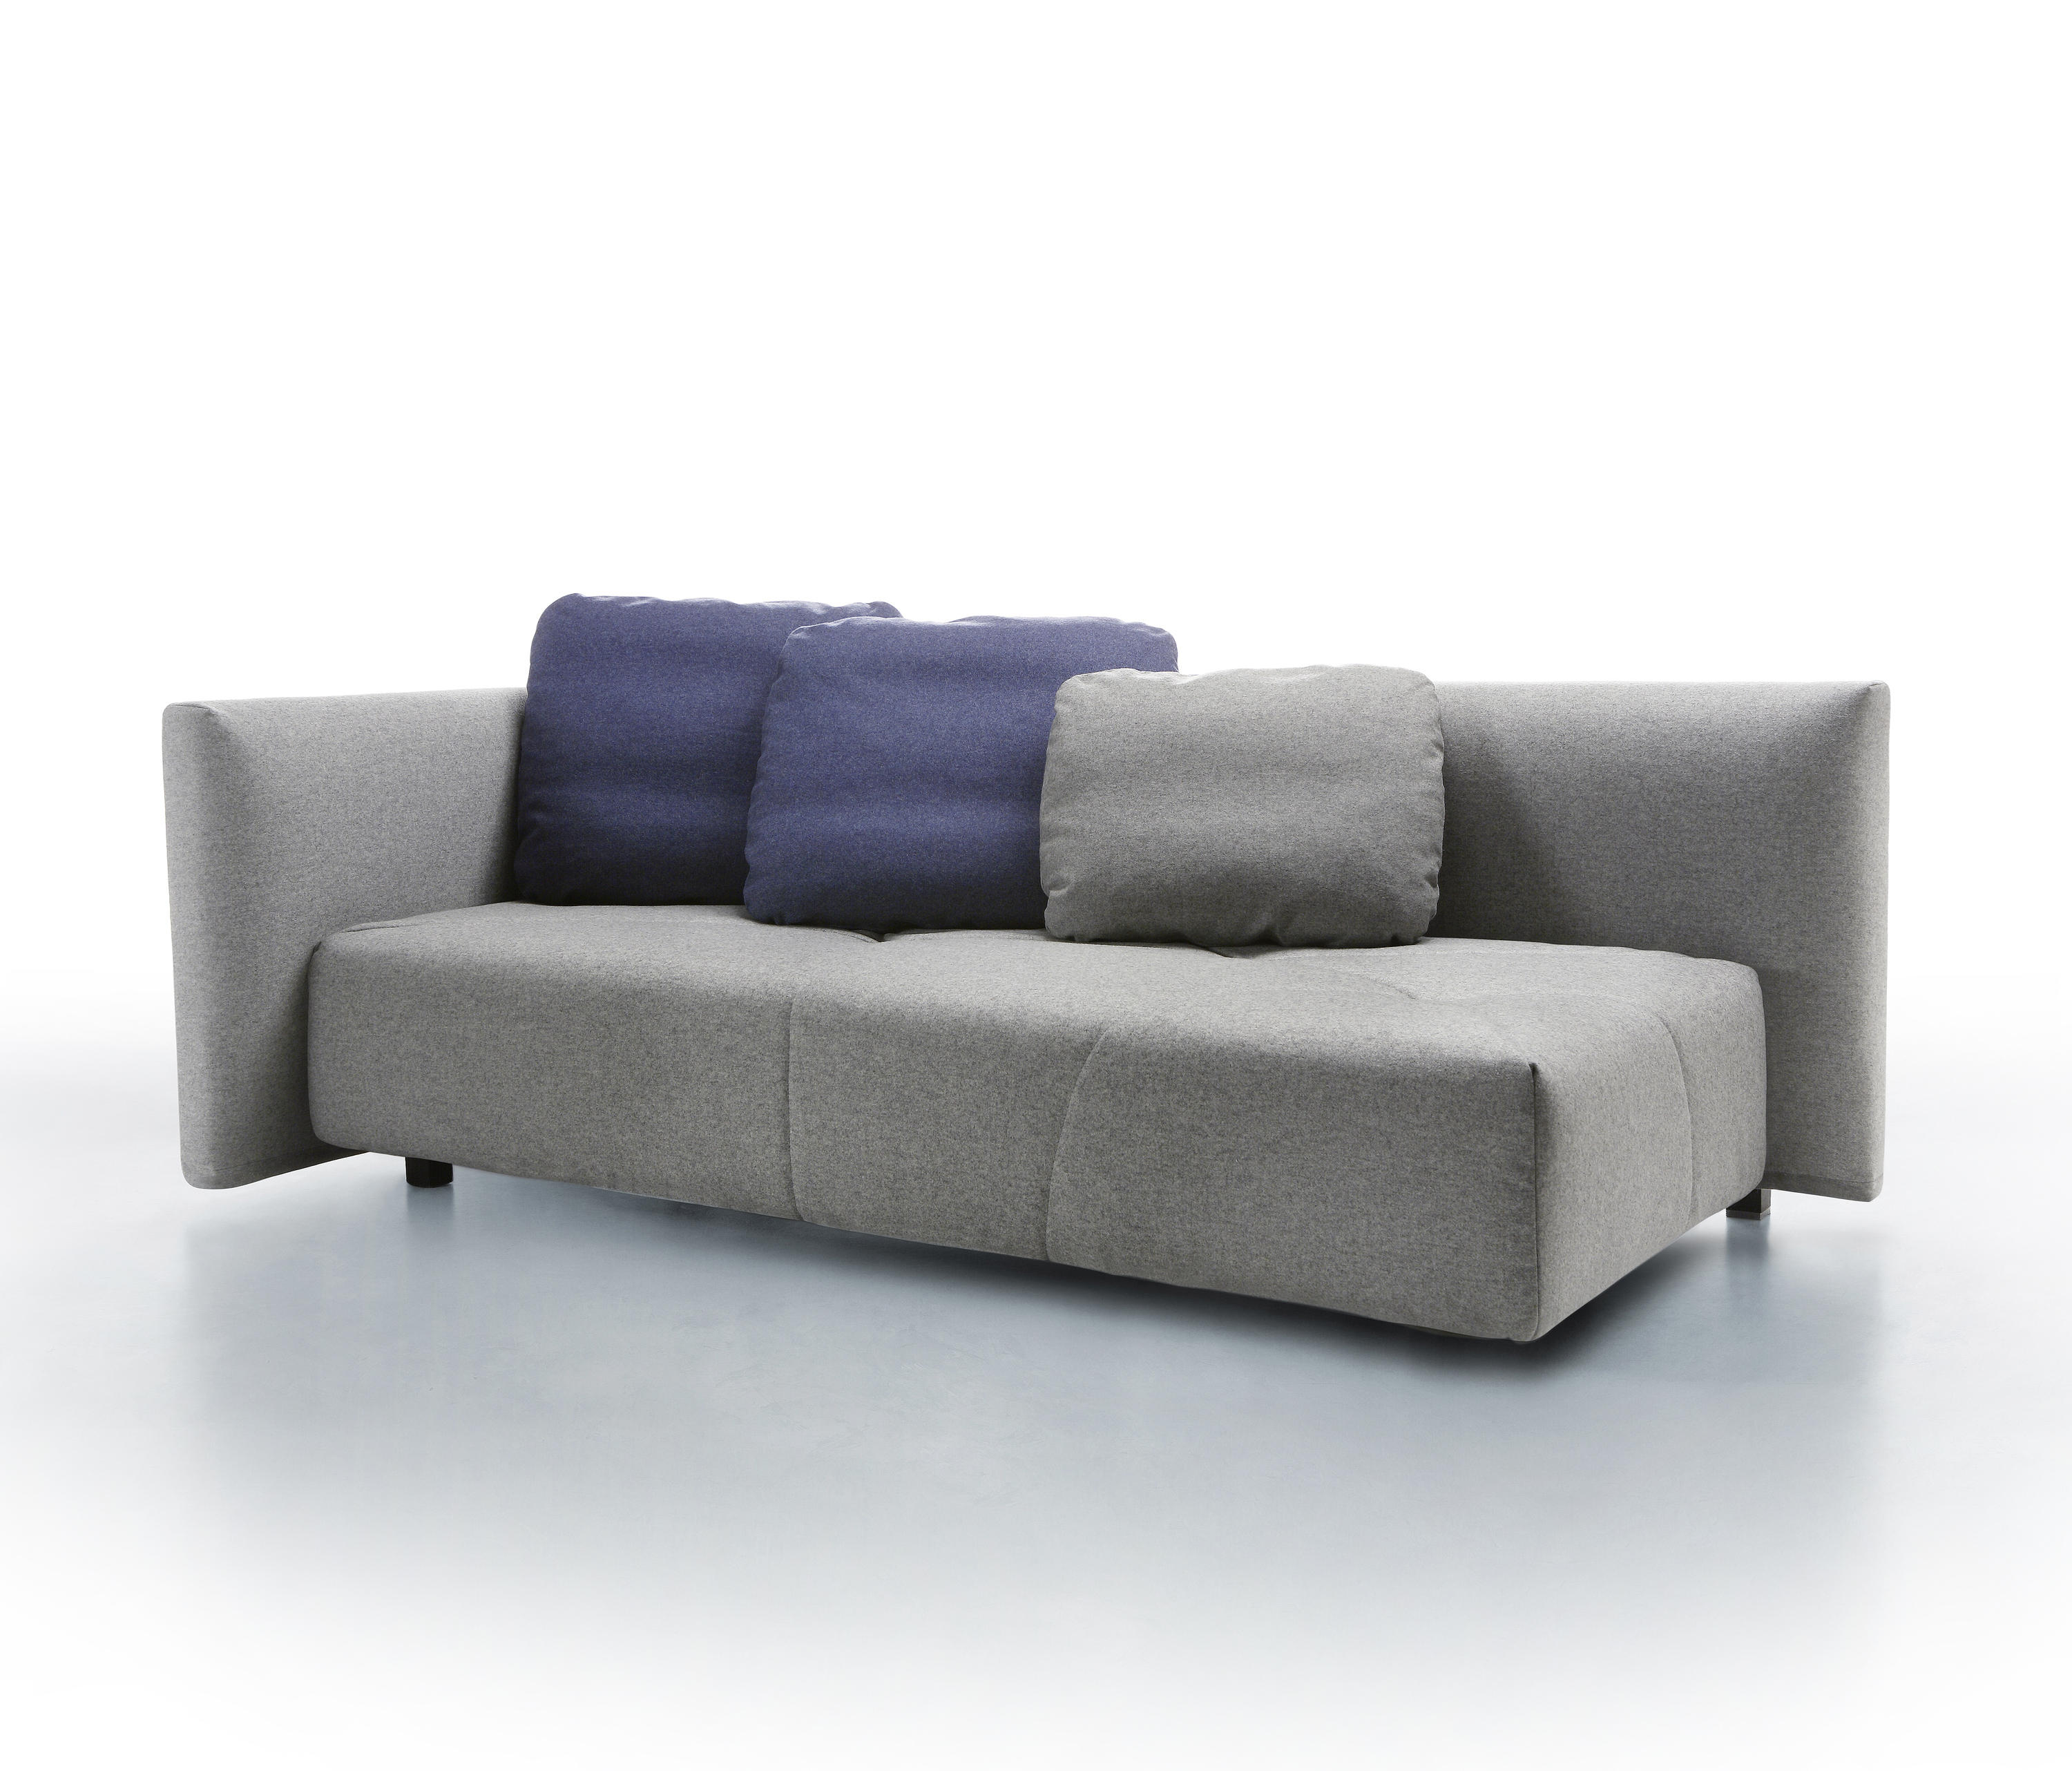 BEDBED SINGLE - Divani letto Design You Edit | Architonic